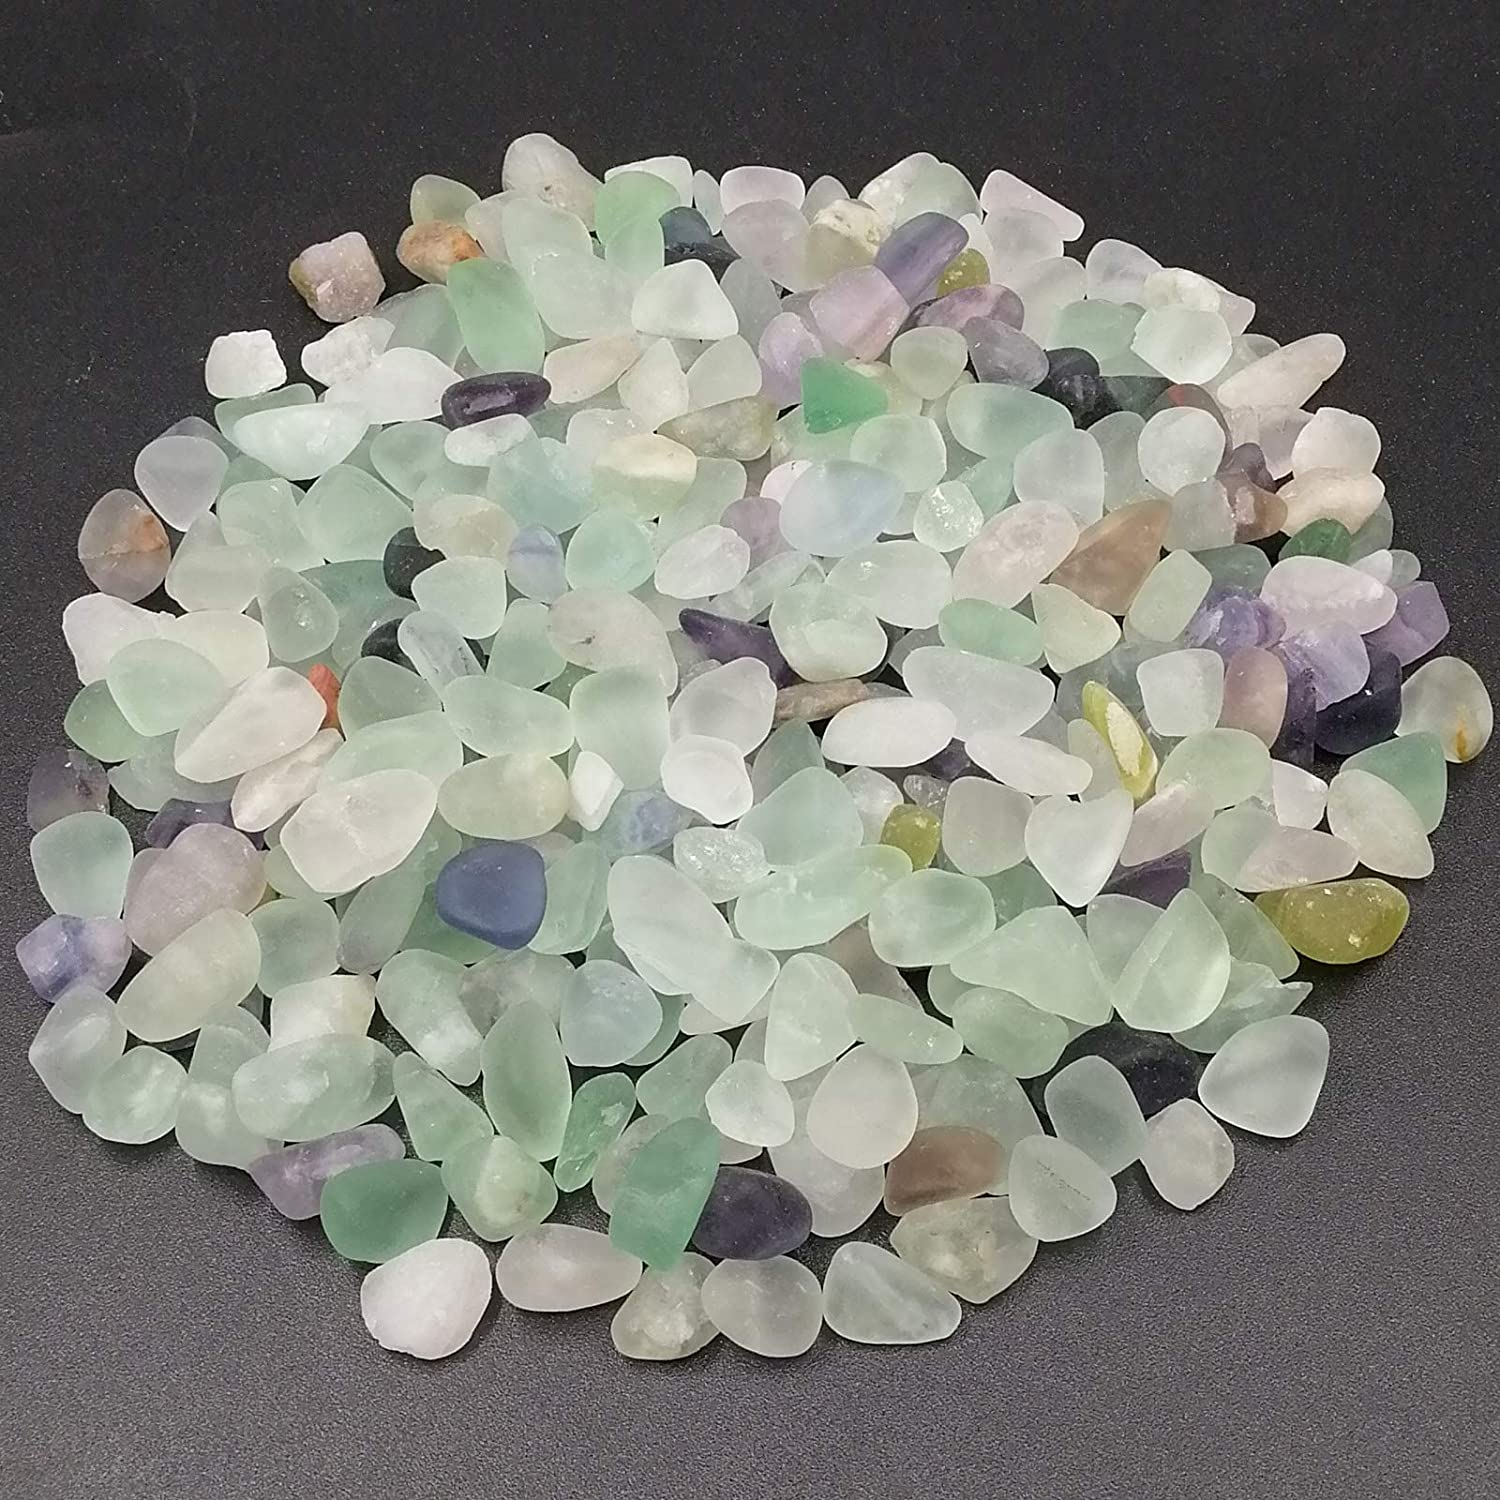 EMiEN 1LB Fluorite Tumbled Chips Stone Crushed Crystal Quartz Pieces Irregular Shaped Stones for Aquarium Substrate, Jewelry Box,Glass Bottle, Plant,Wedding,Home Decoration (Mix Color)